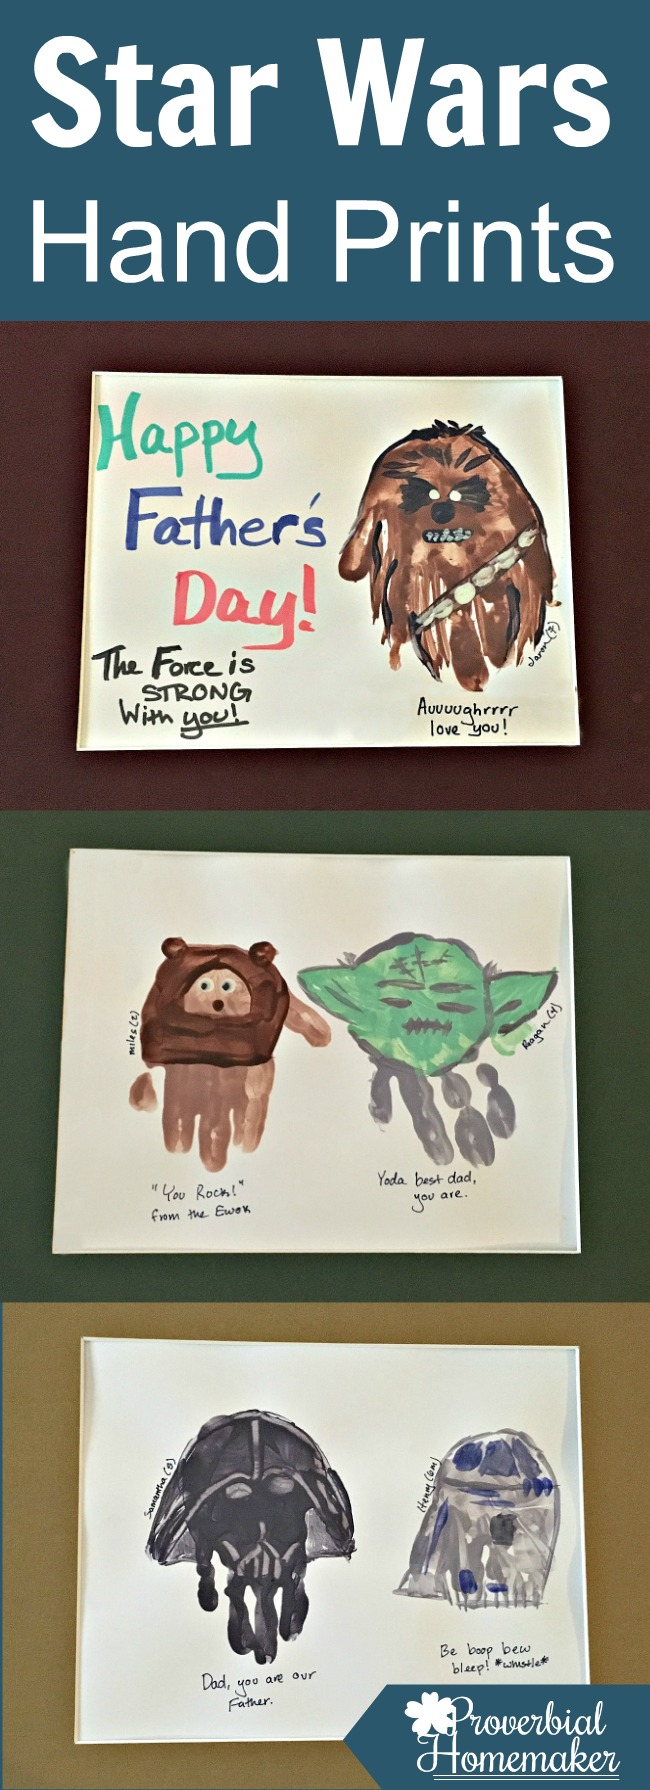 Star wars hand prints for father 39 s day proverbial homemaker for Star wars arts and crafts